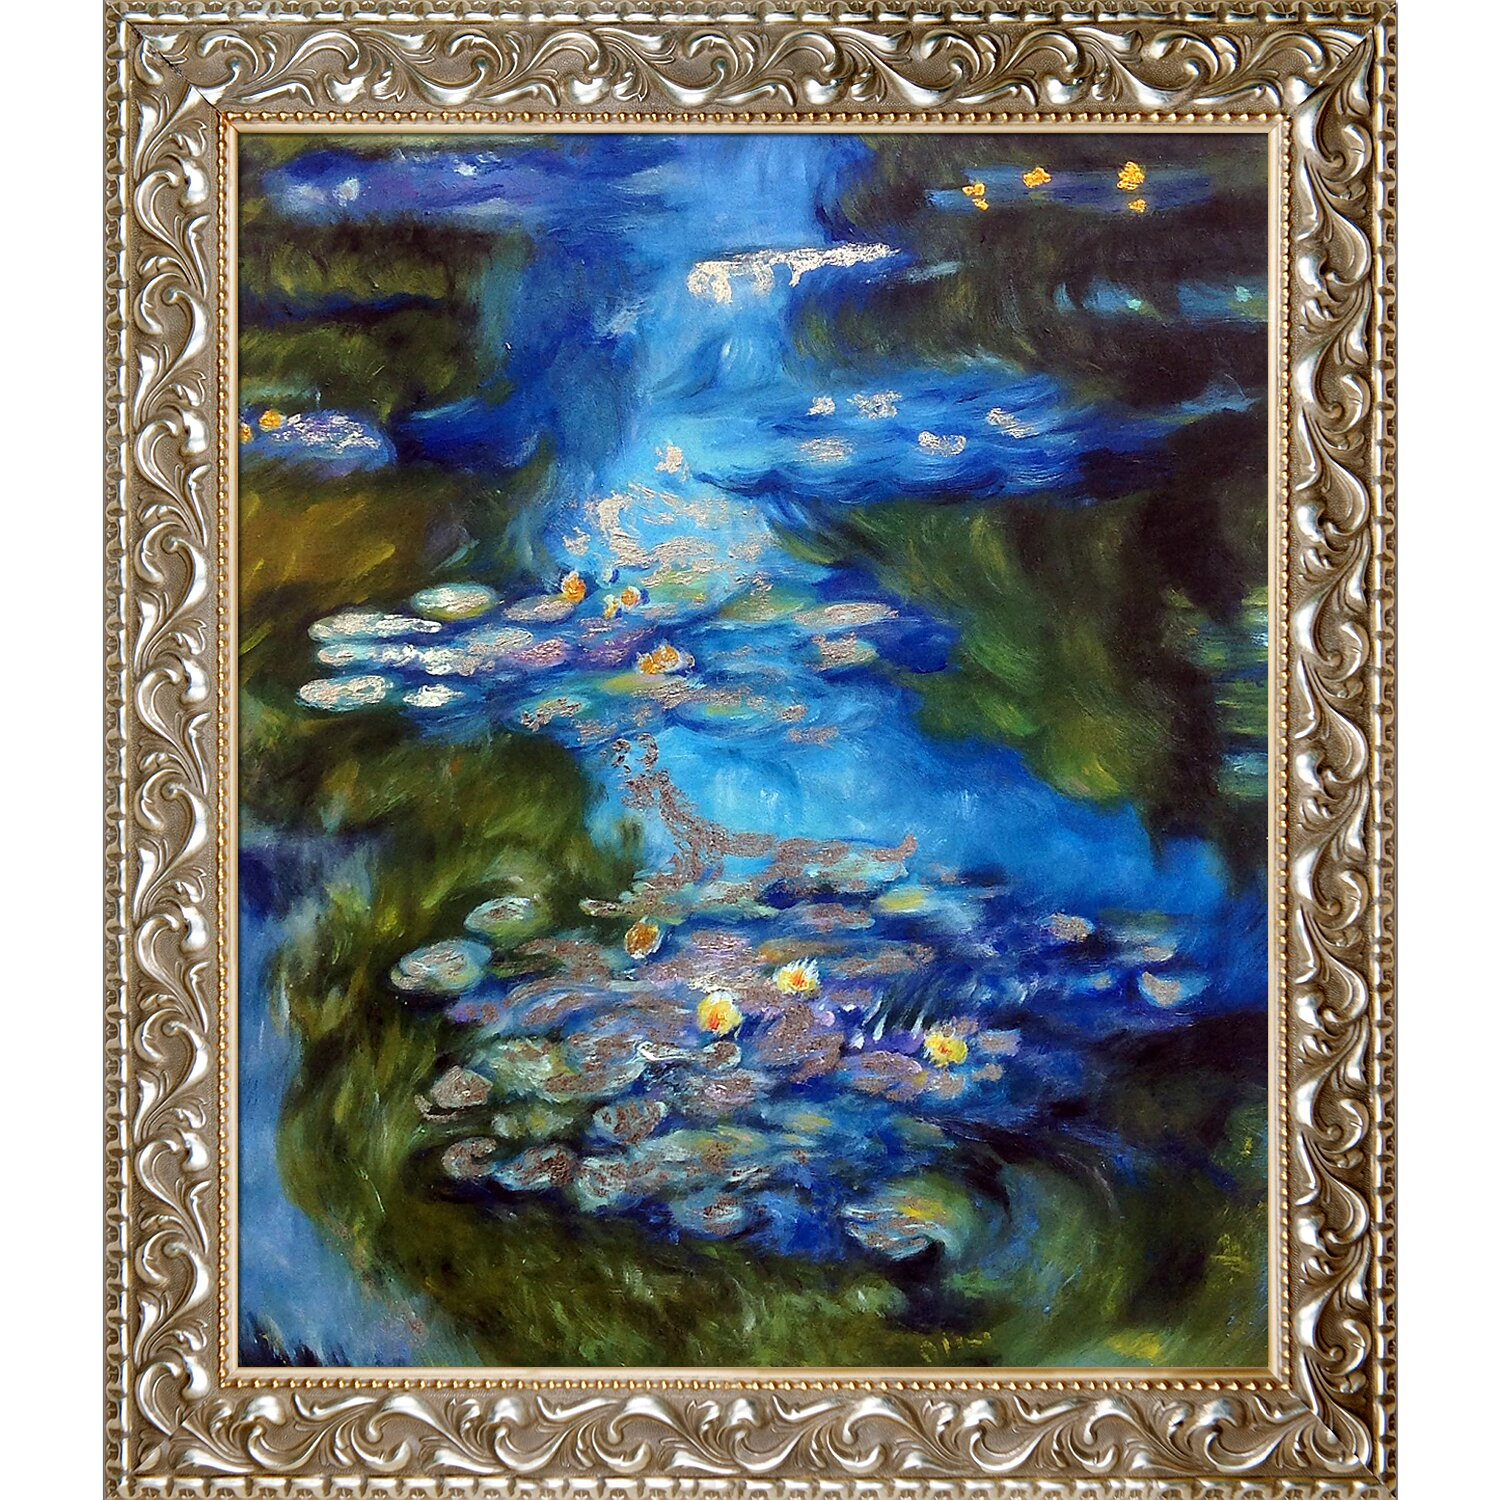 La Pastiche Water Lilies By Claude Monet Framed Painting